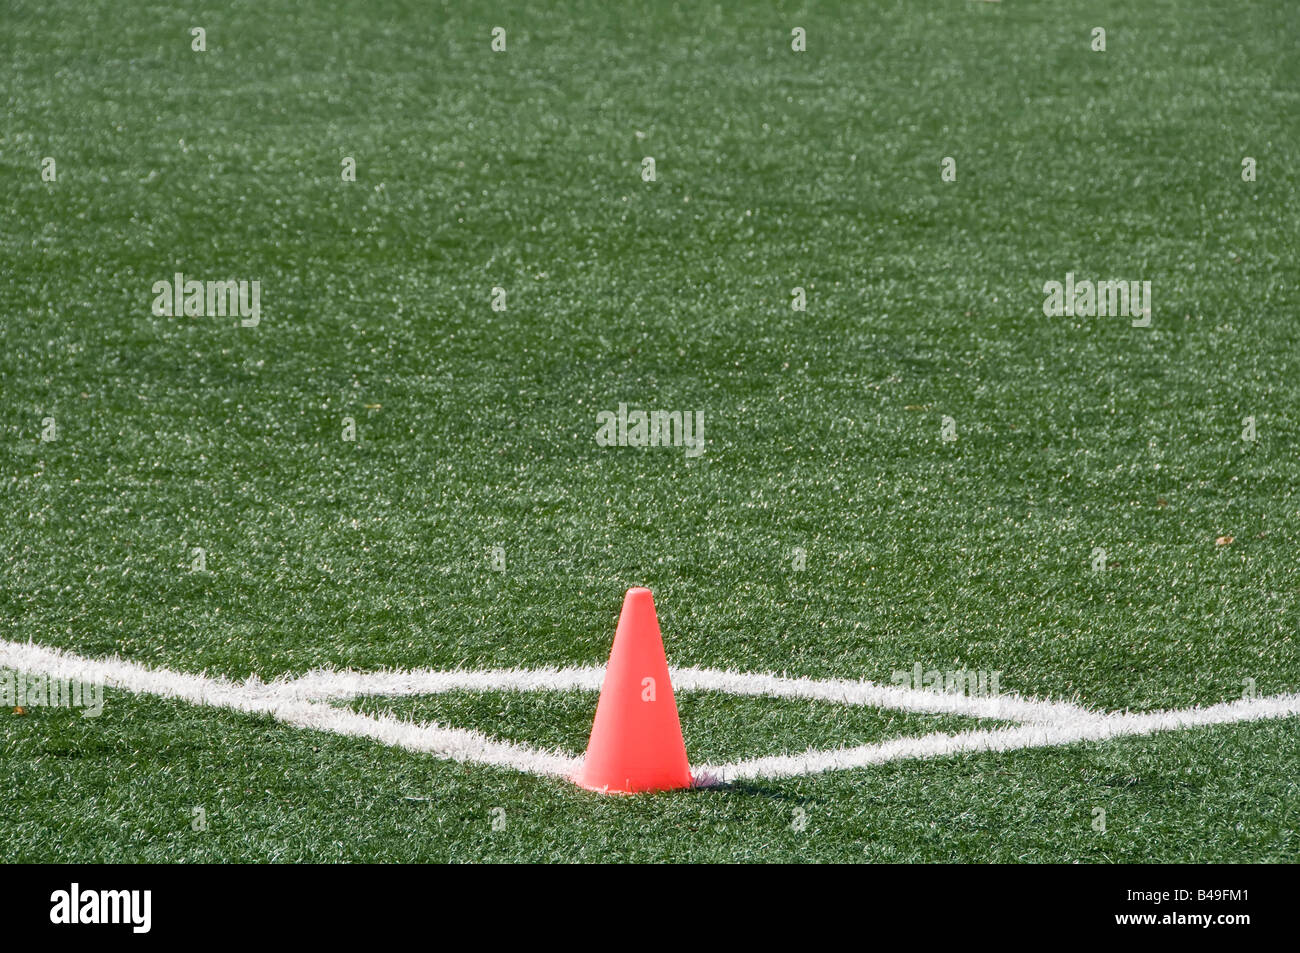 Pink cone standing at corner of football soccer field - Stock Image